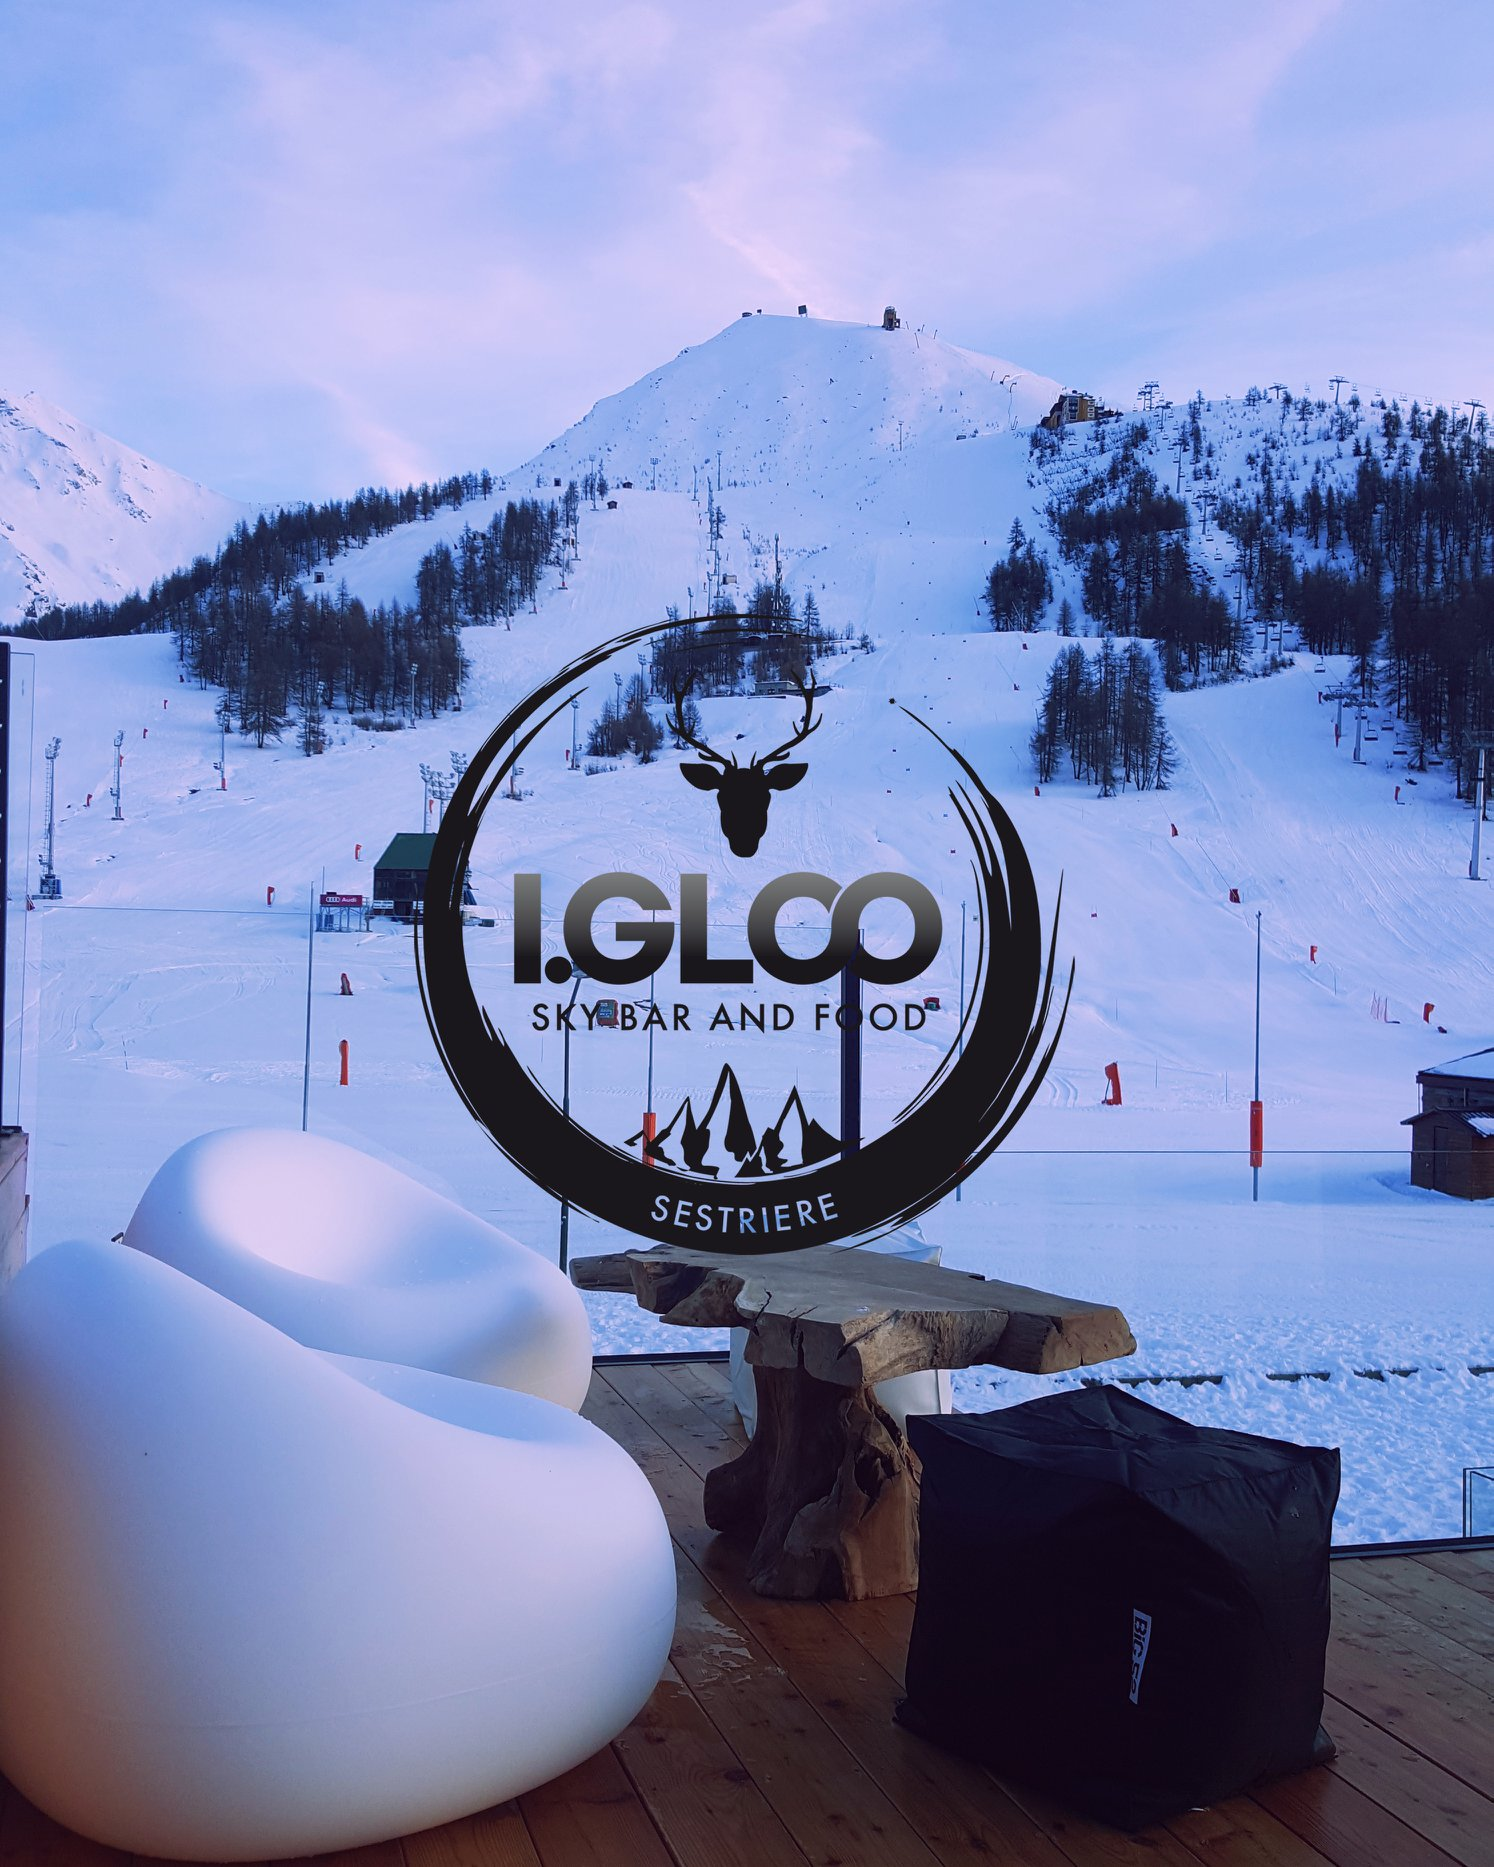 Igloo sky bar Sestriere